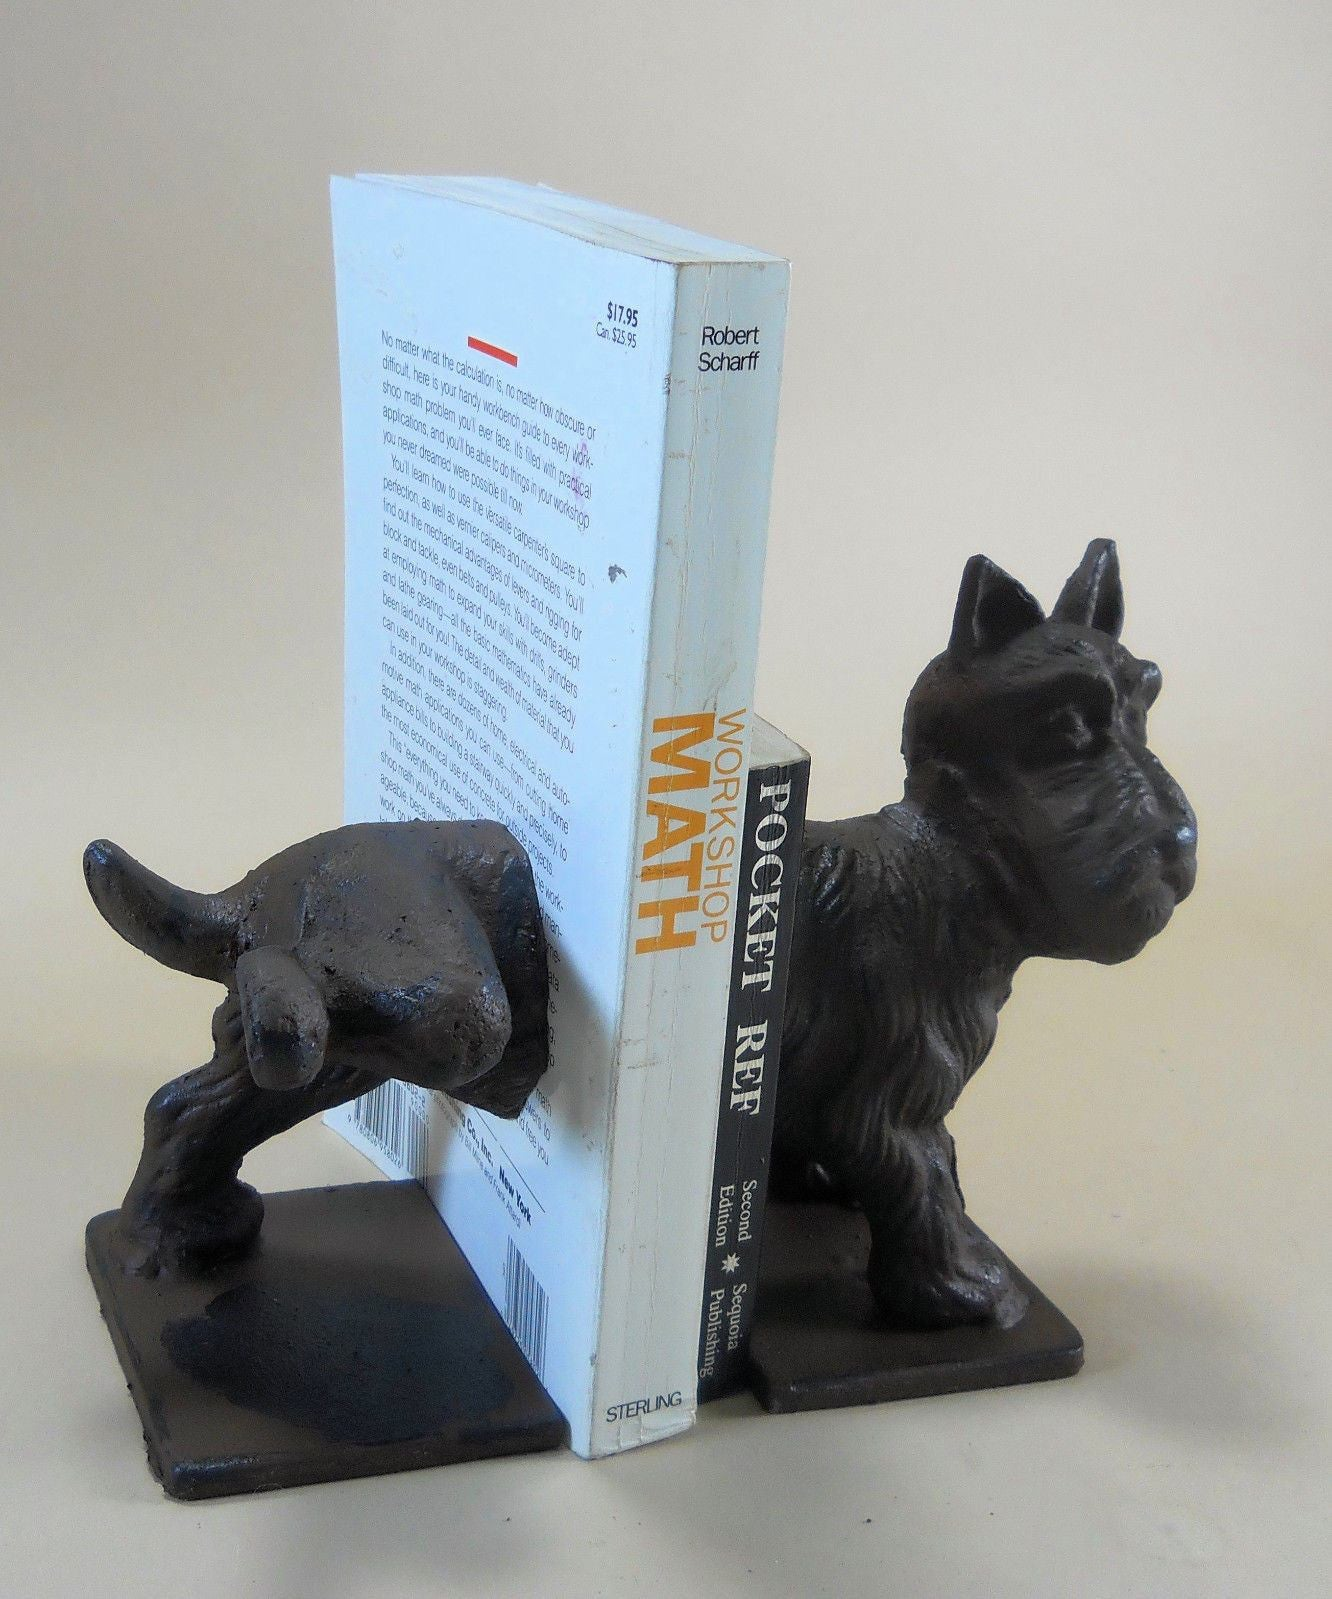 Scottish Terrier Dog Bookends Cast Iron Naughty Pee On It Puppy Library Doorstop Book Ends Carvers Old Iron